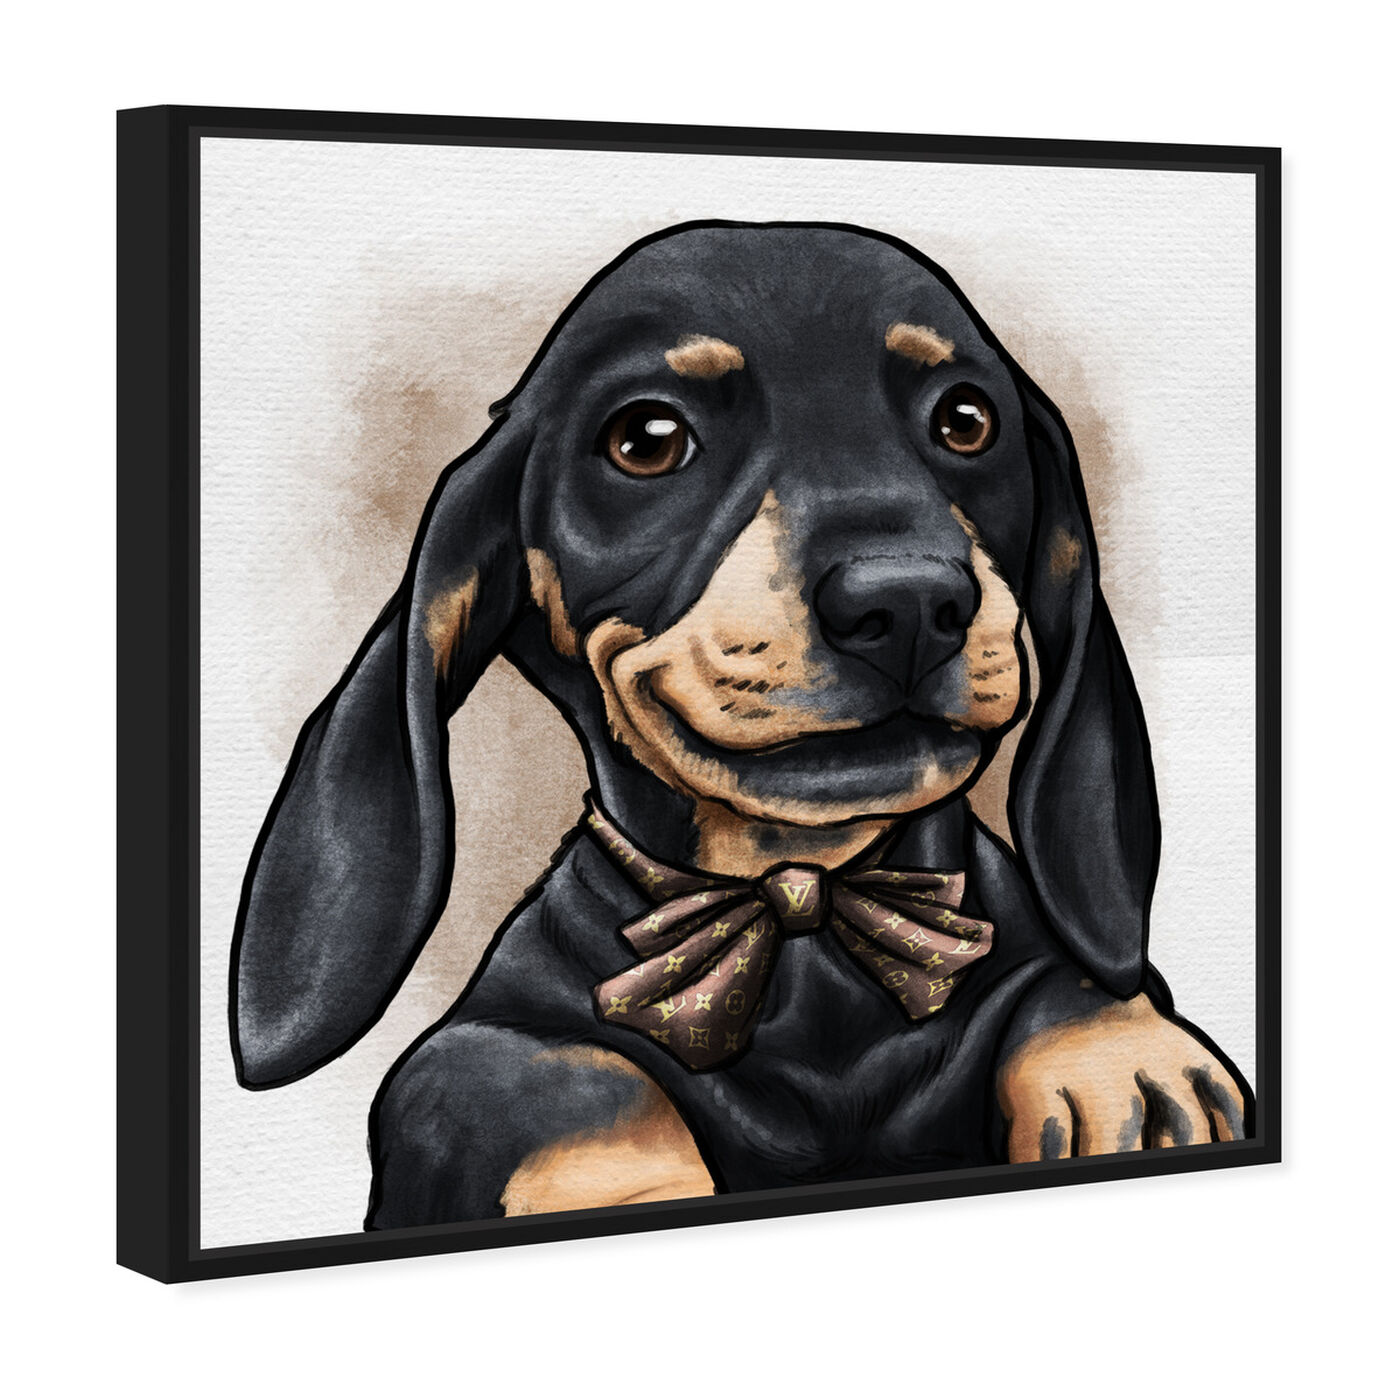 Angled view of Dapper Dachshund featuring animals and dogs and puppies art.